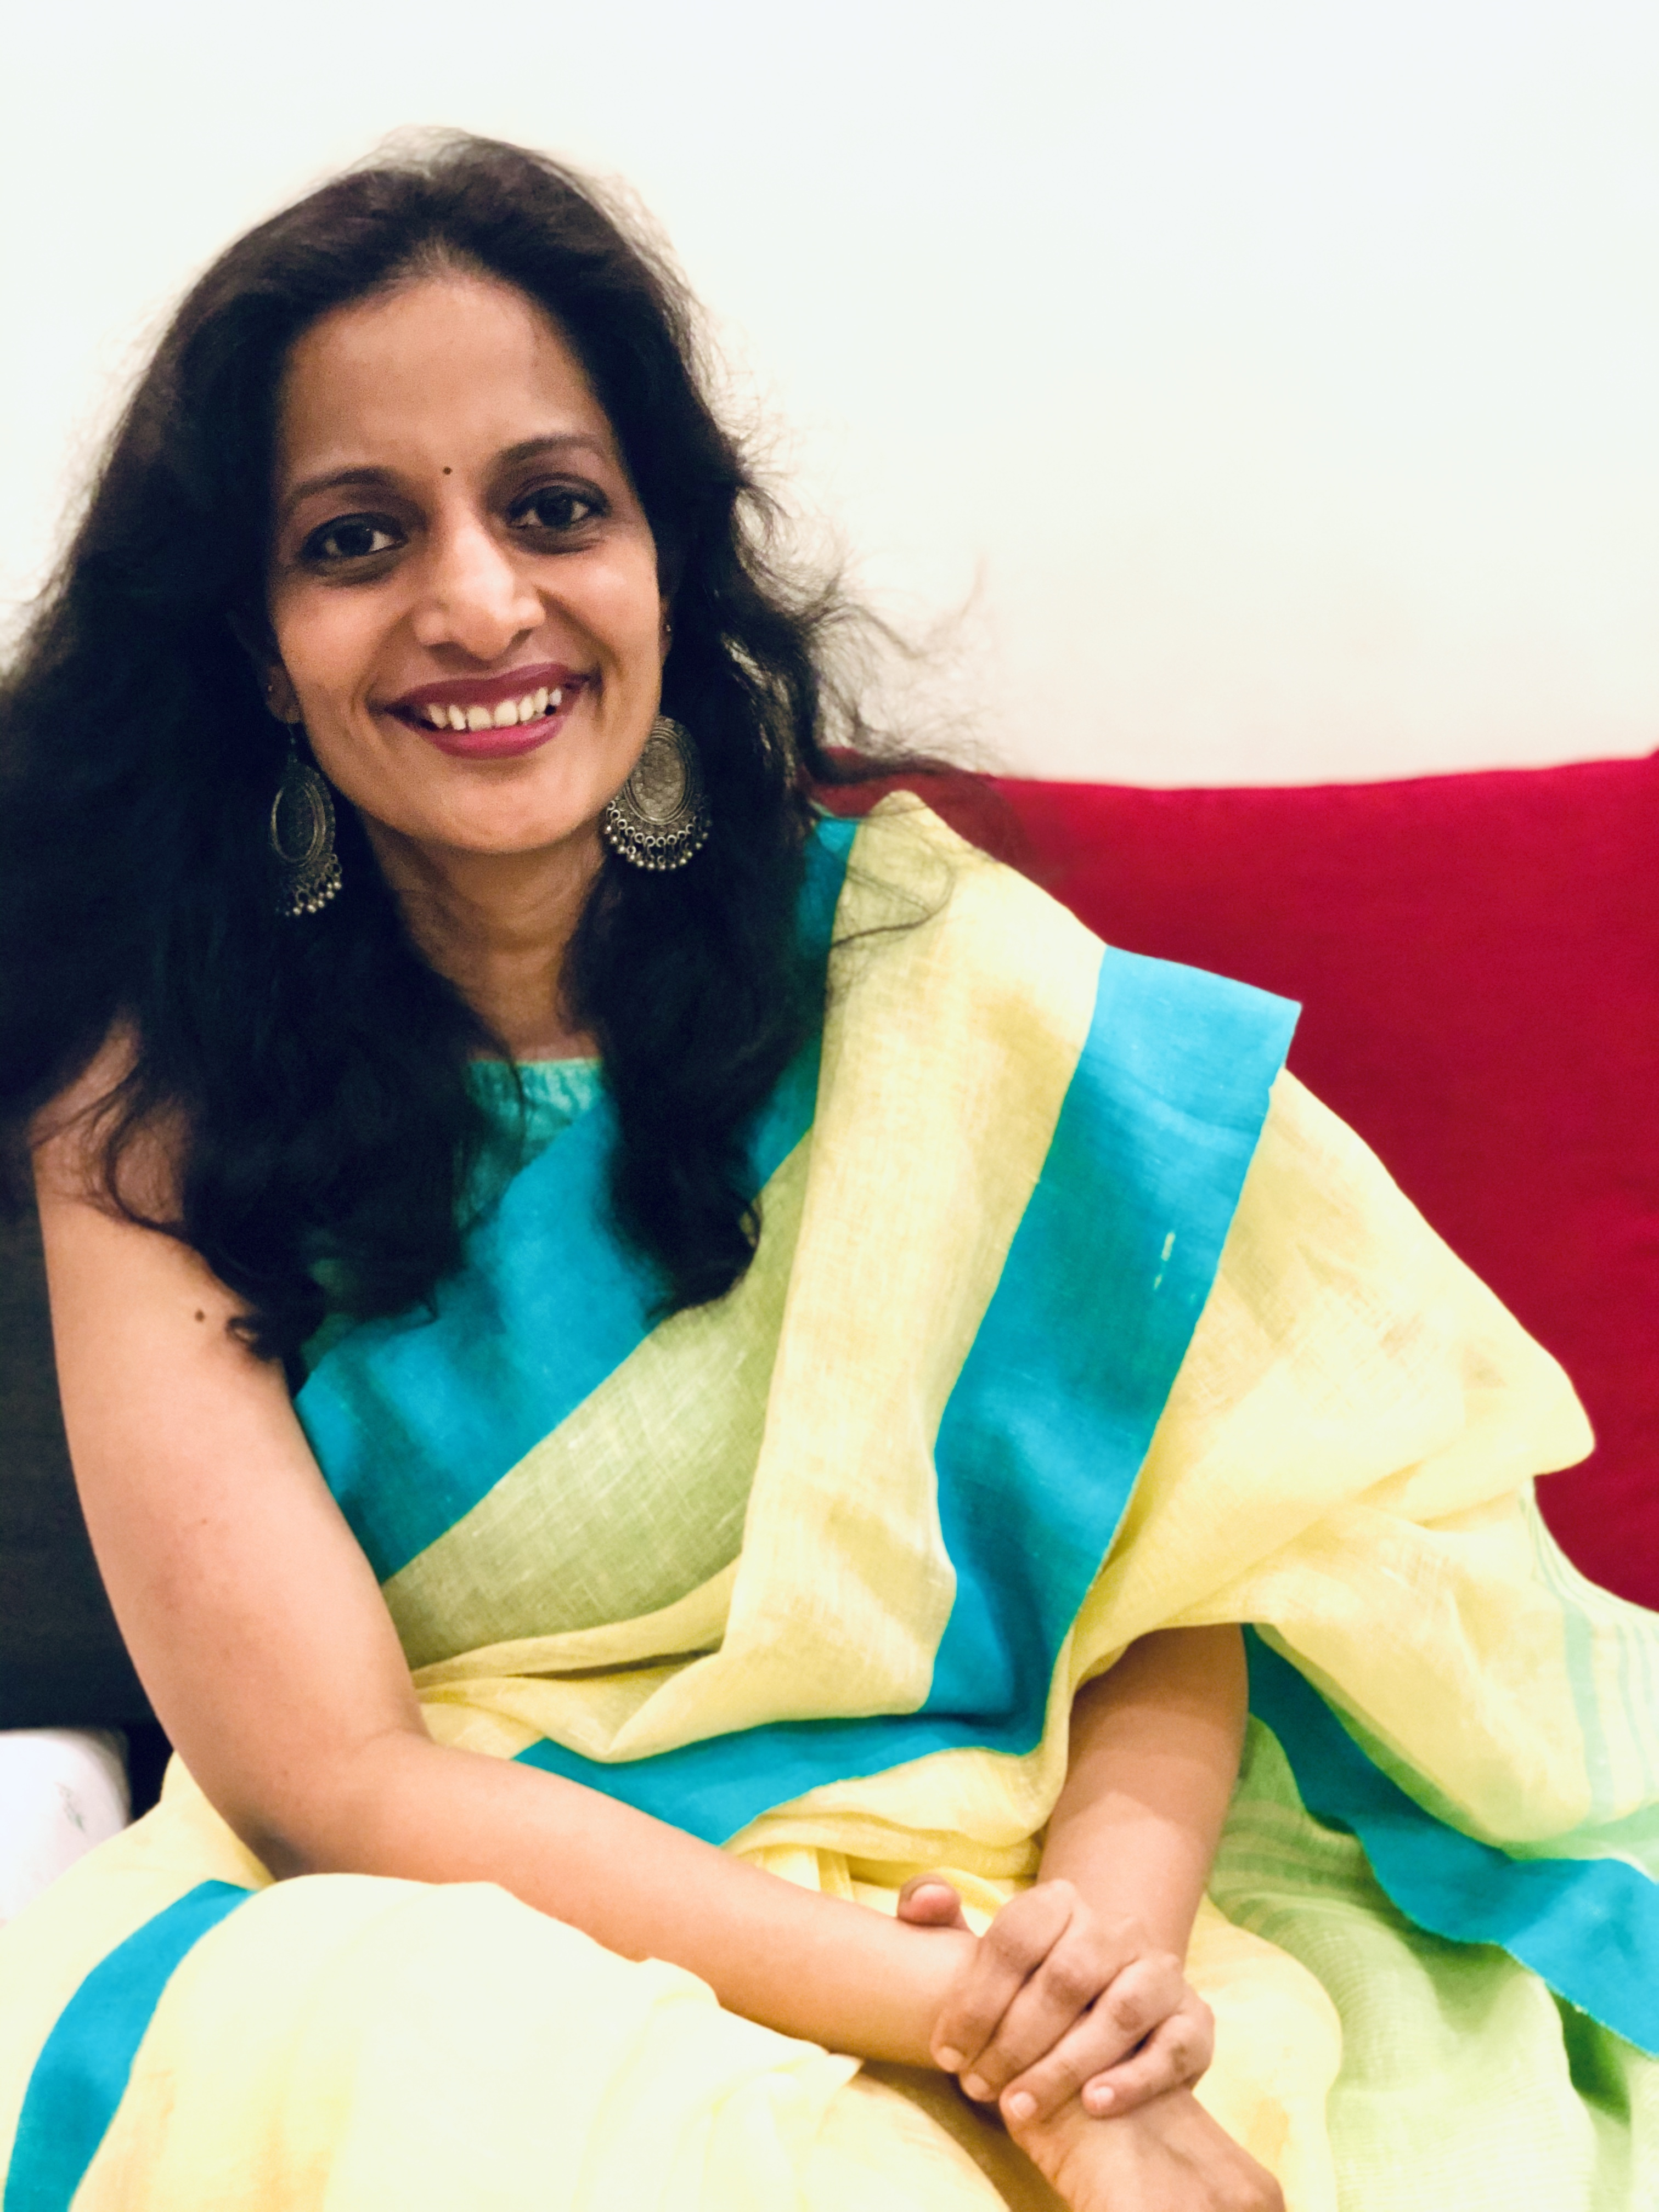 Hailing from Thrissur, Kerala, Shilpa relocated to Singapore in 1999. Photo courtesy: Kathaa Studios